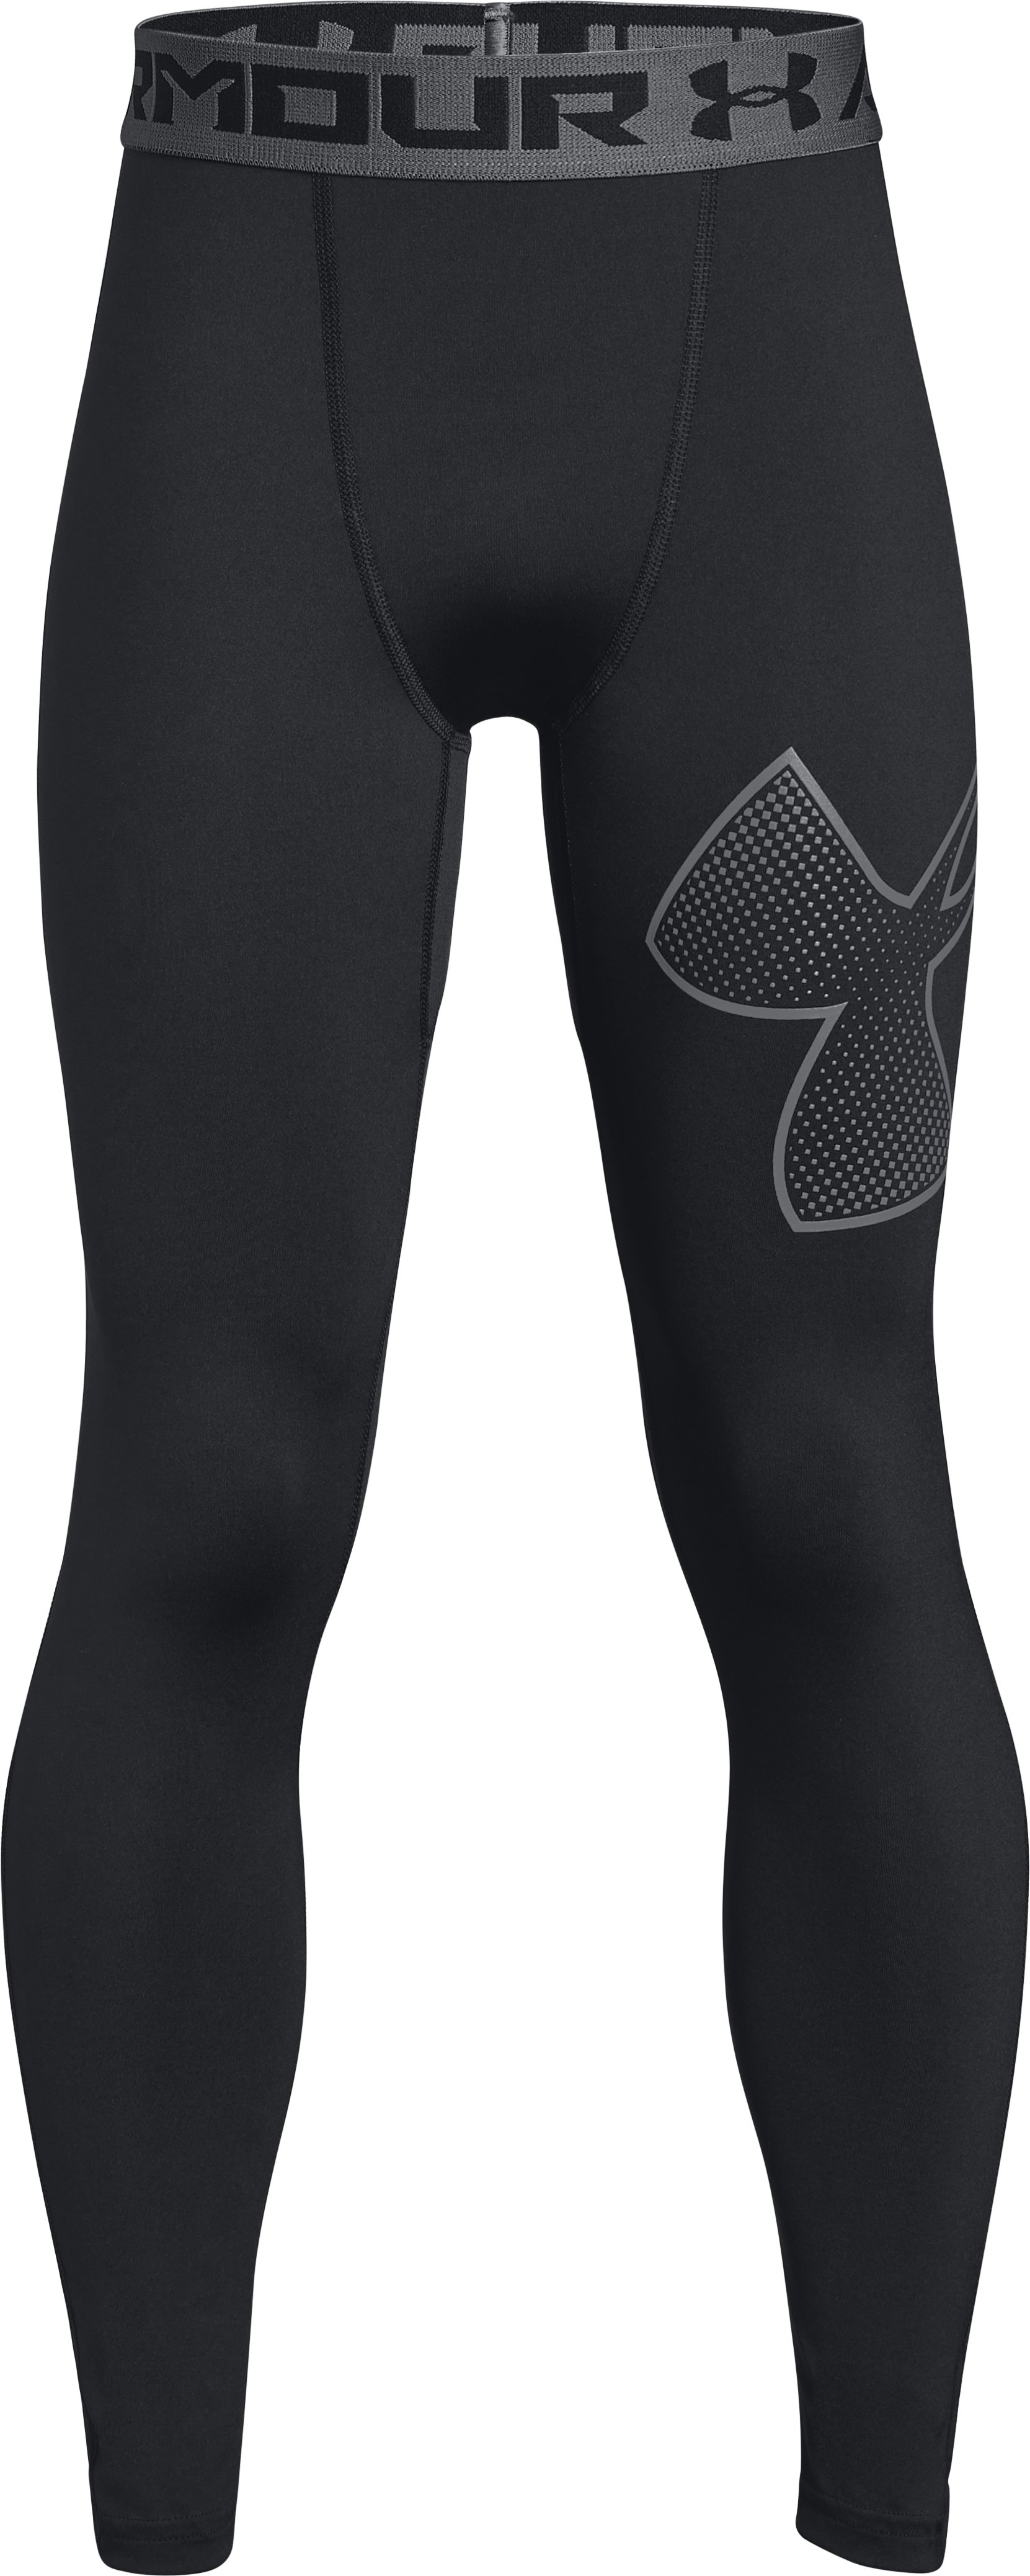 Boys' HeatGear® Armour Logo Leggings, Black